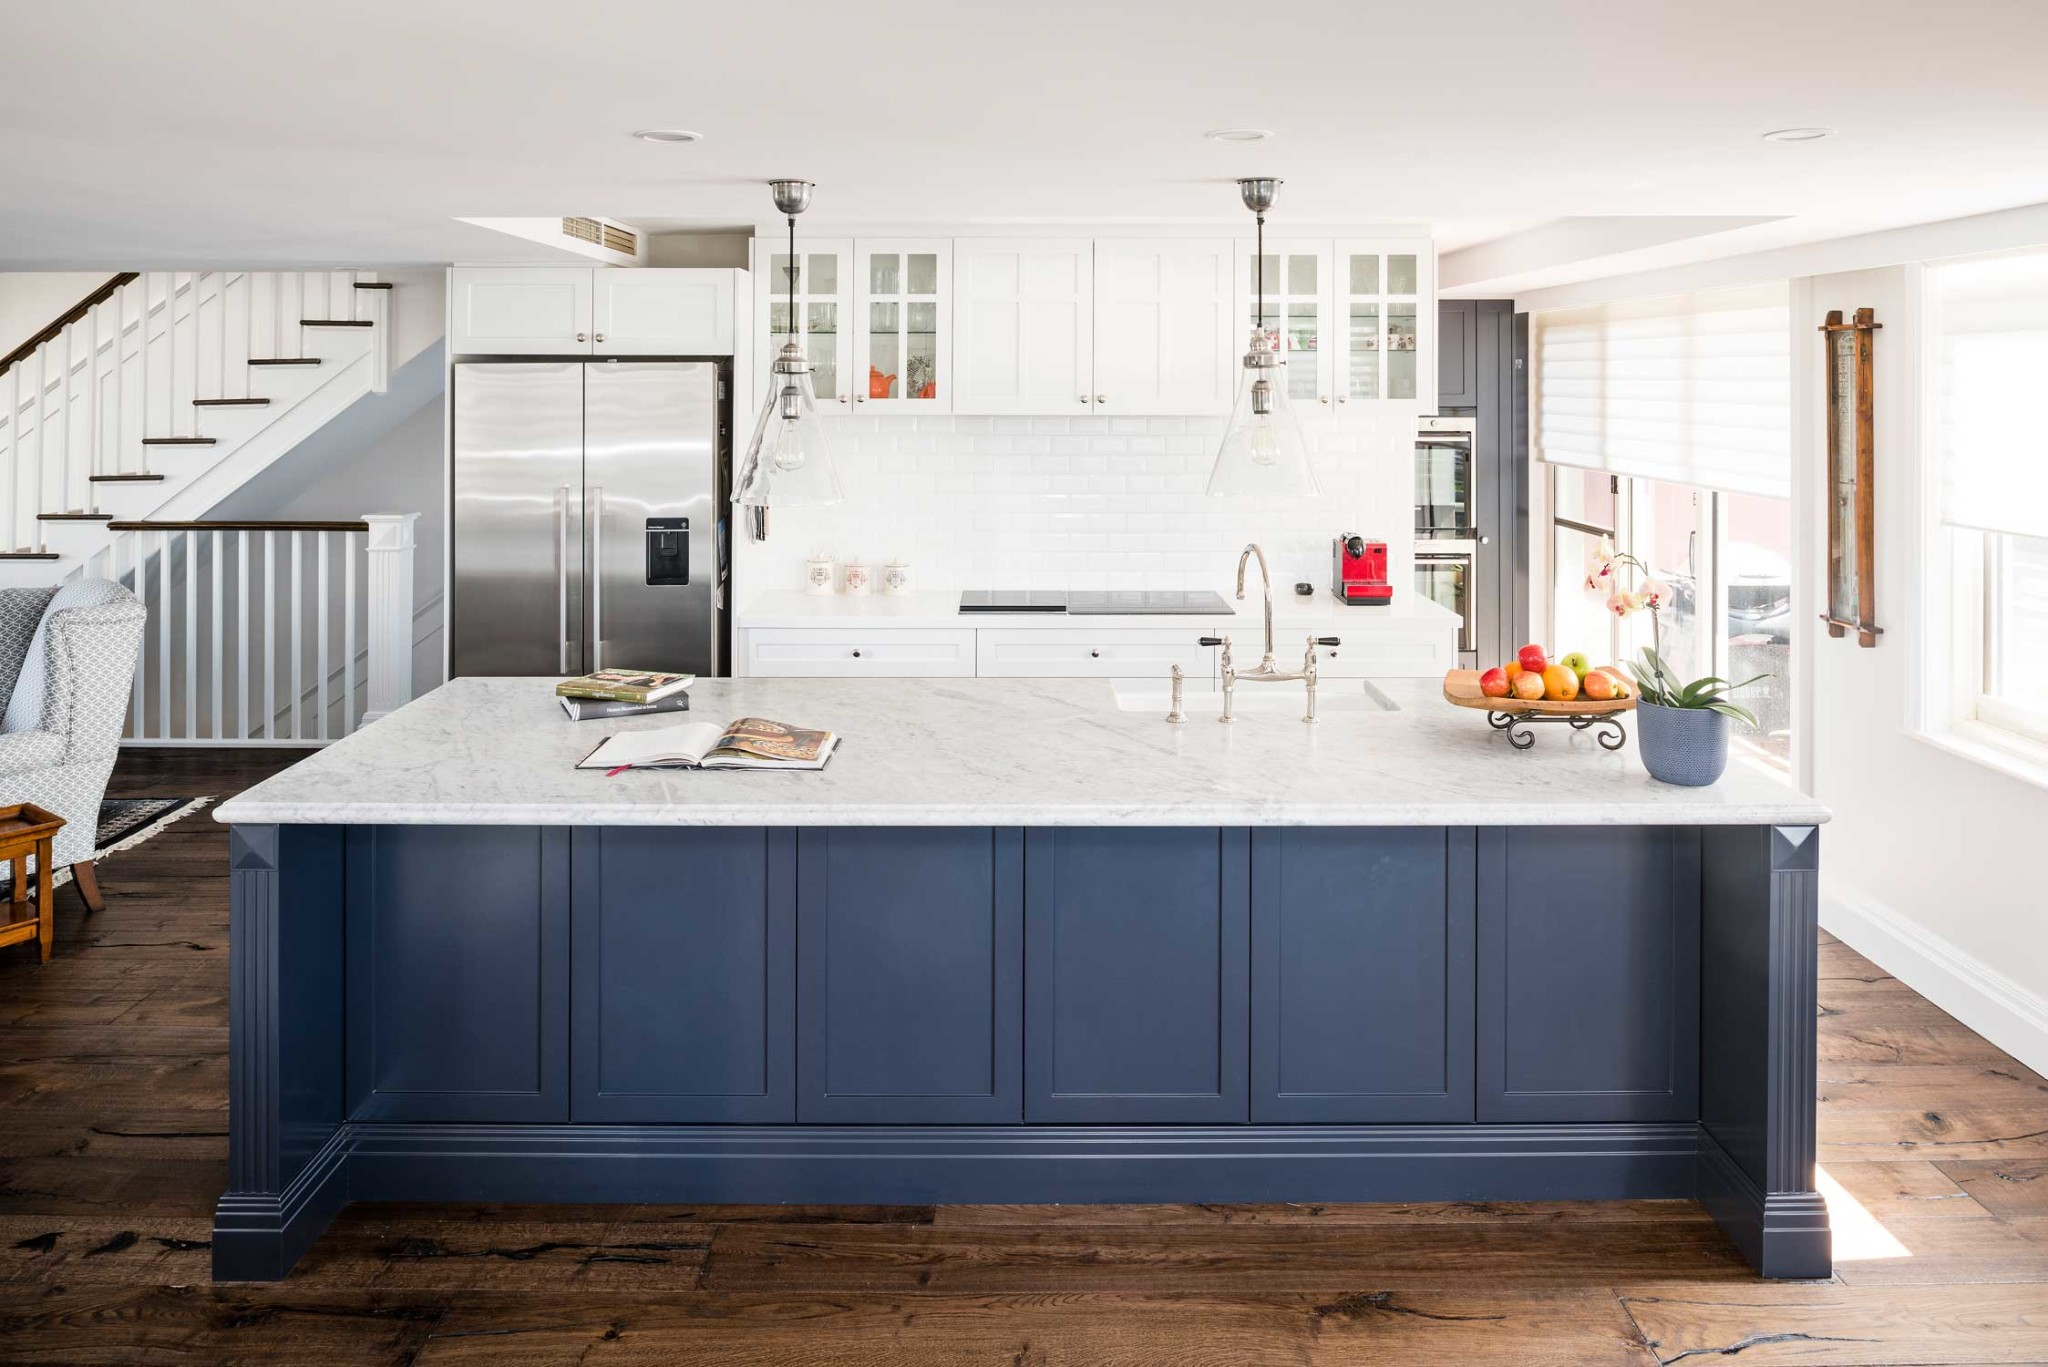 Hamptons Kitchens - Rosemount Kitchens